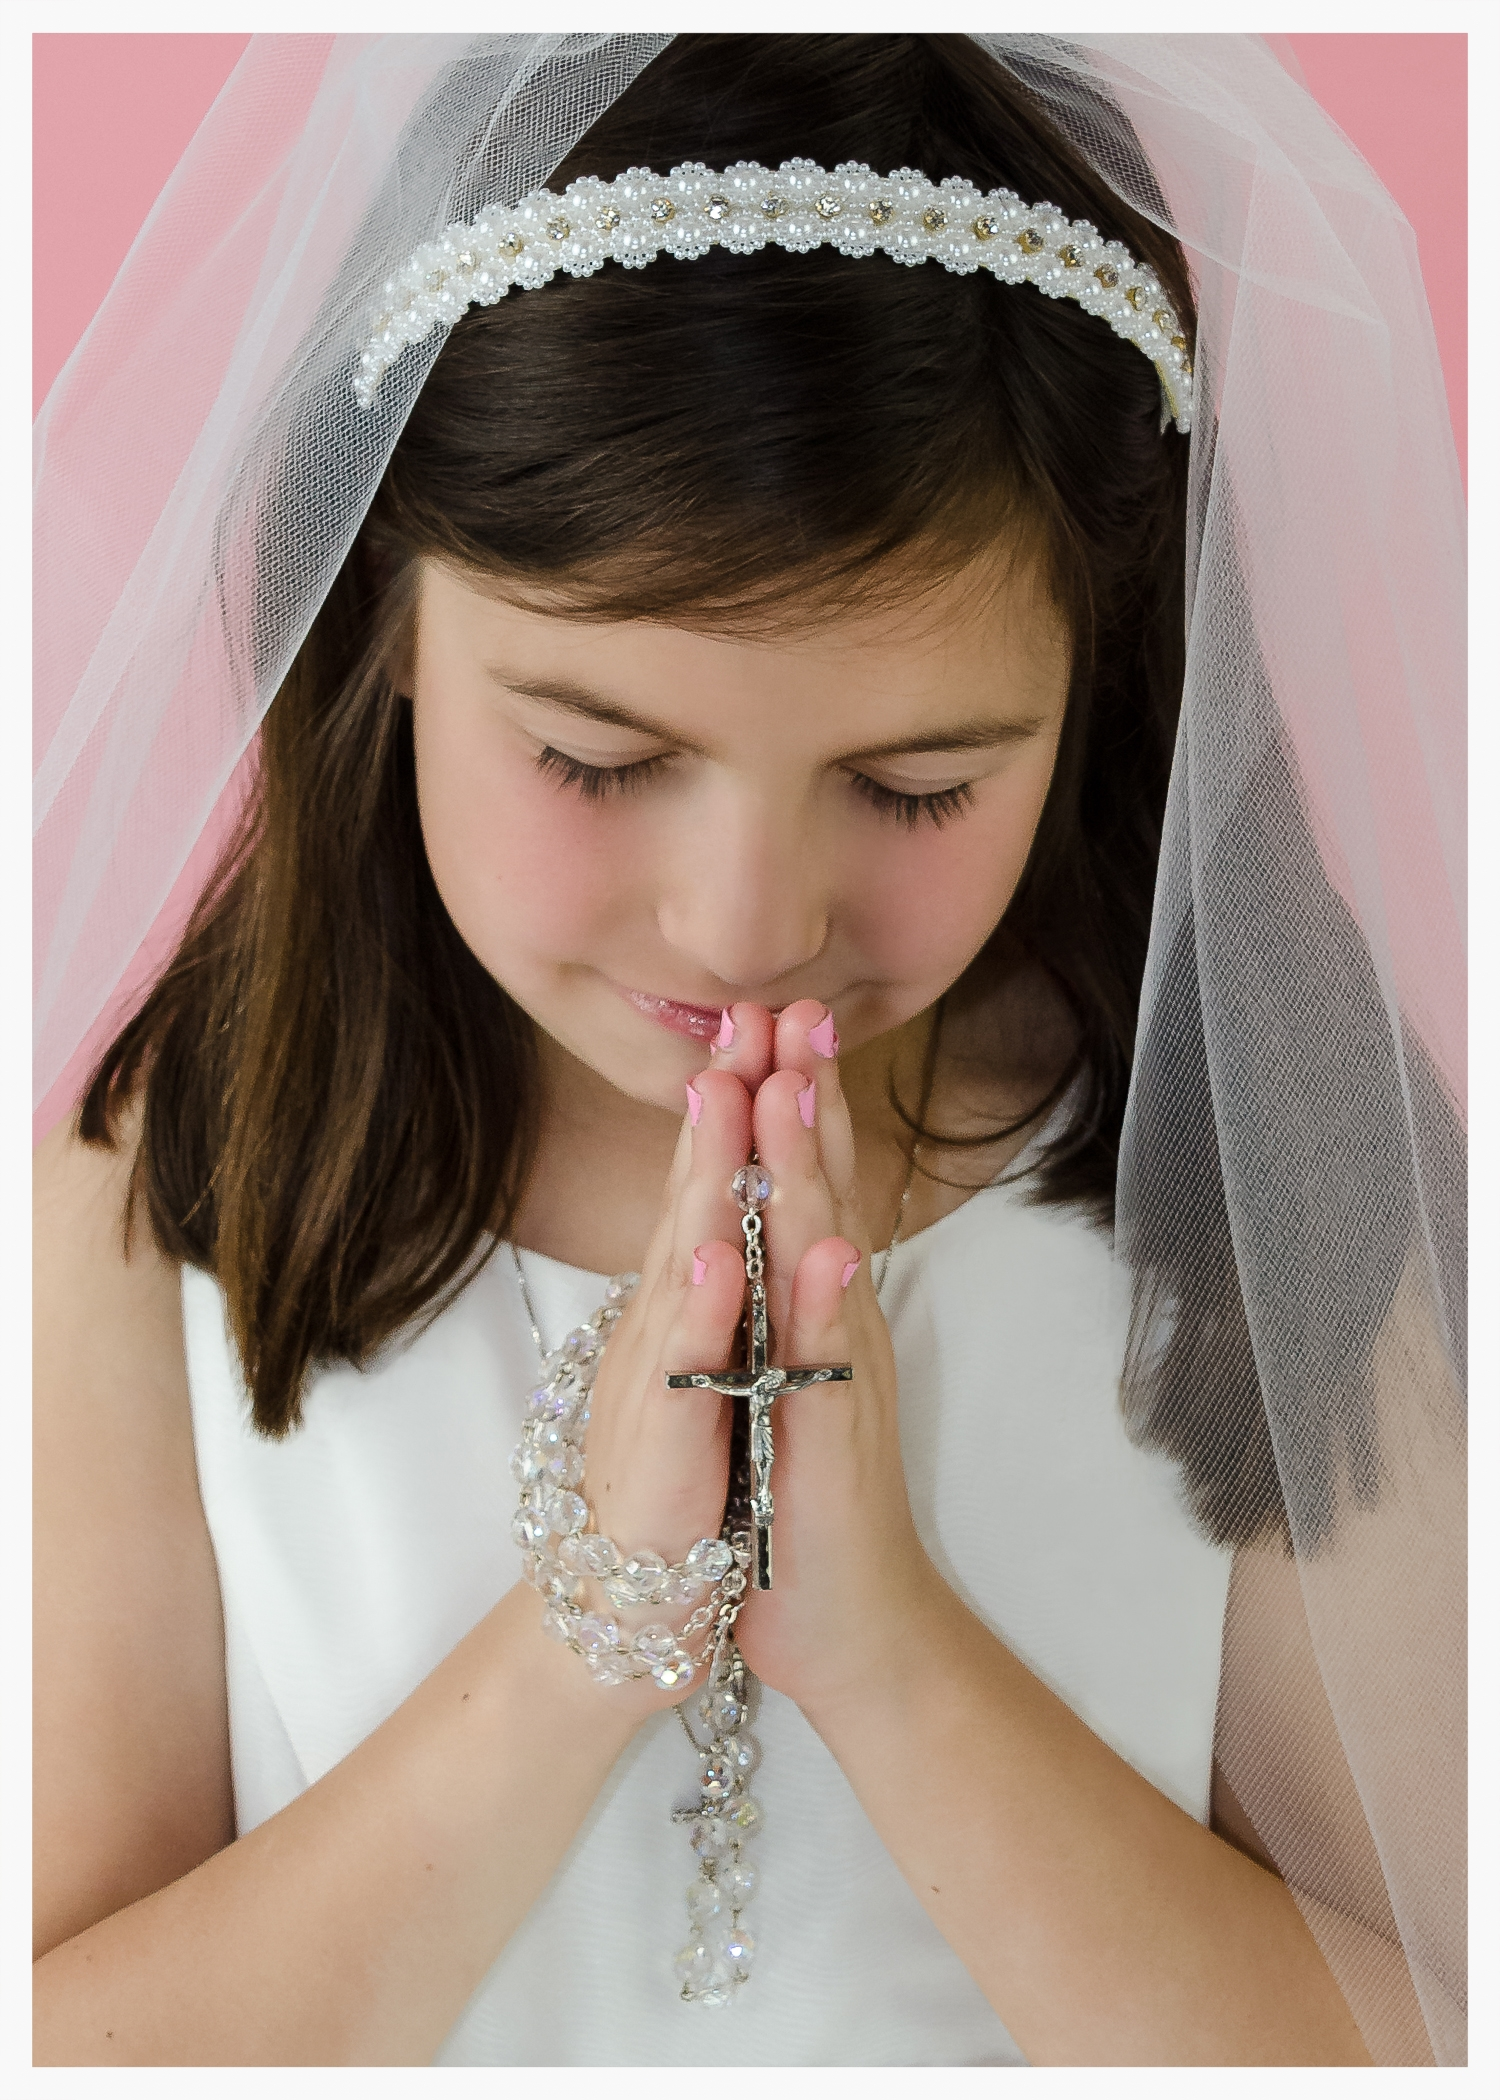 FIRST COMMUNION: A VERY SPECIAL OCCASION